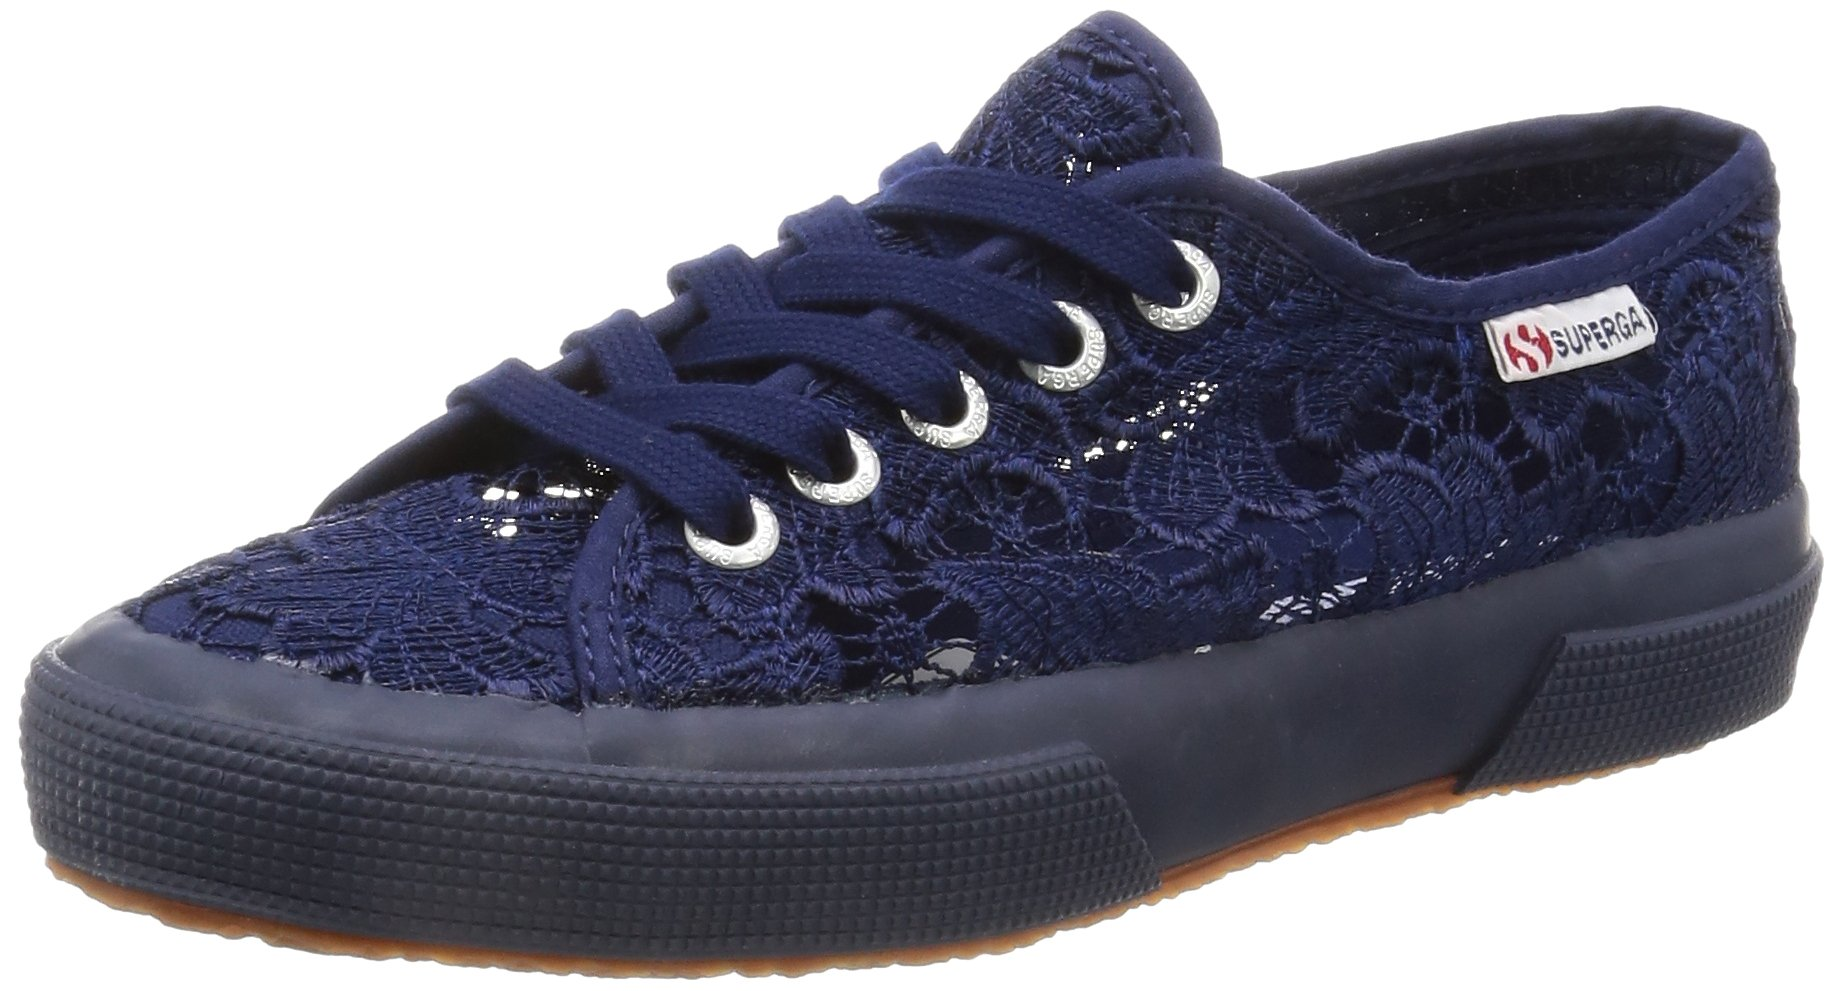 Superga Womens 2750 Macrame Lace Low Top Casual Summer Fashion Sneakers - Navy - 7.5